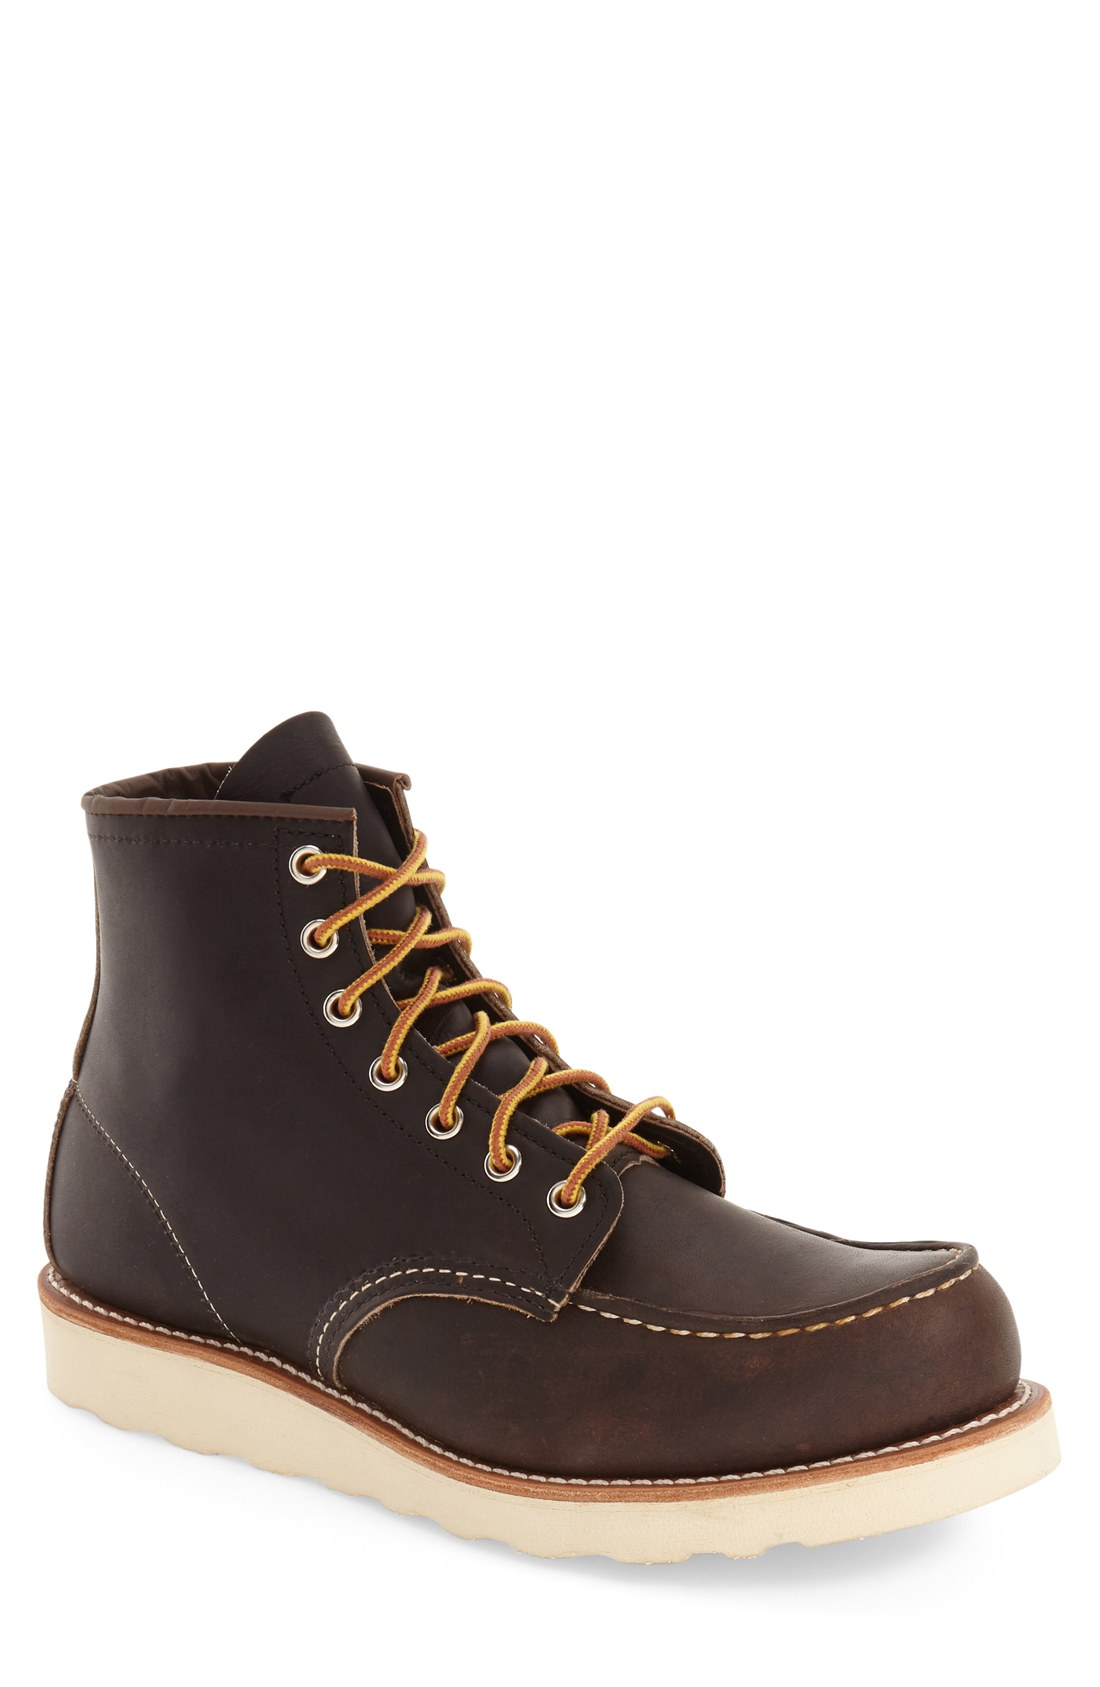 Red Wing Boots Coupon u7M5chL3